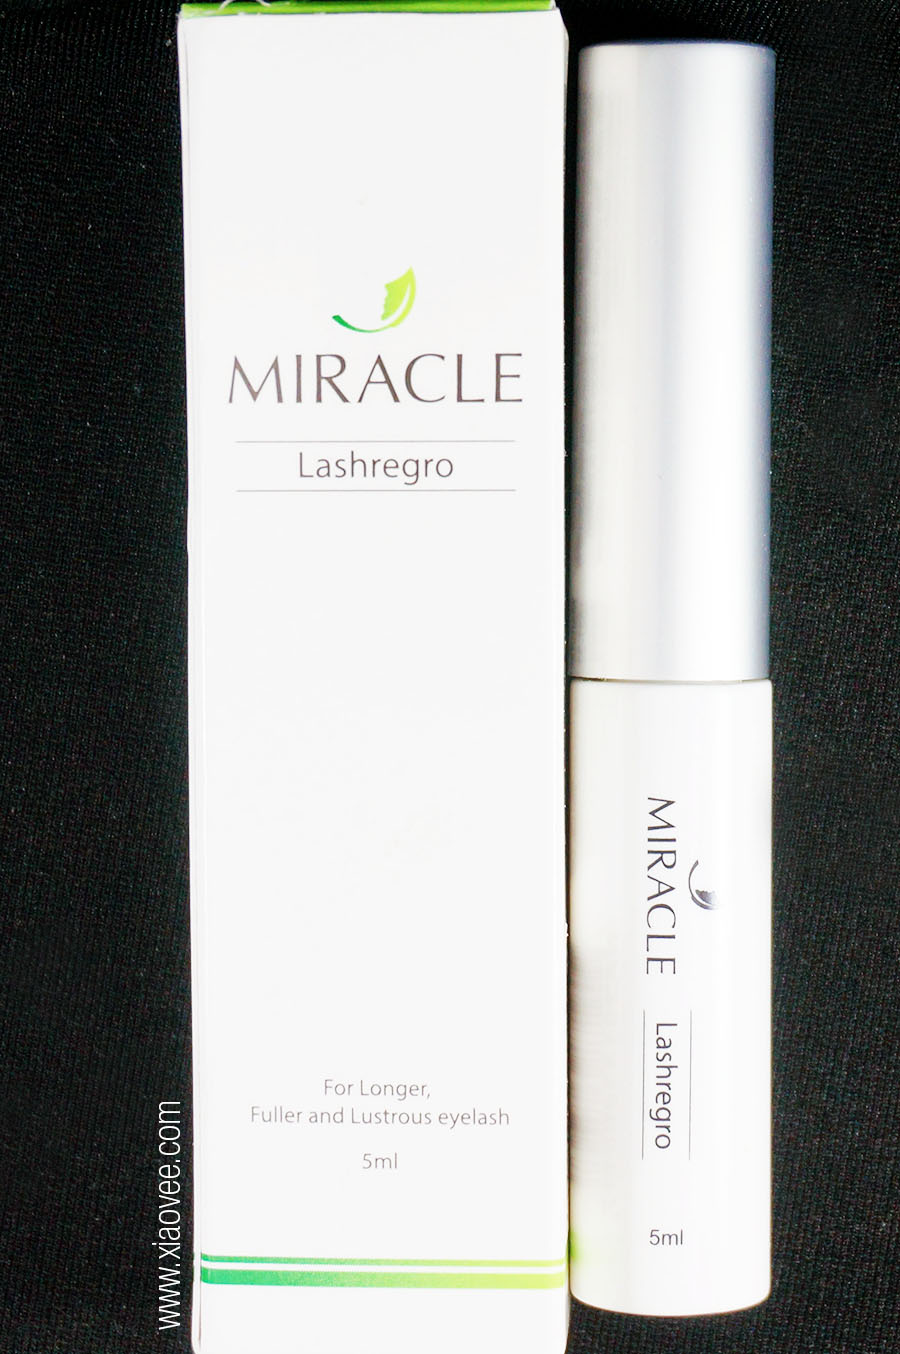 Miracle Lashregro, Miracle Lash regro eyelash growth serum review